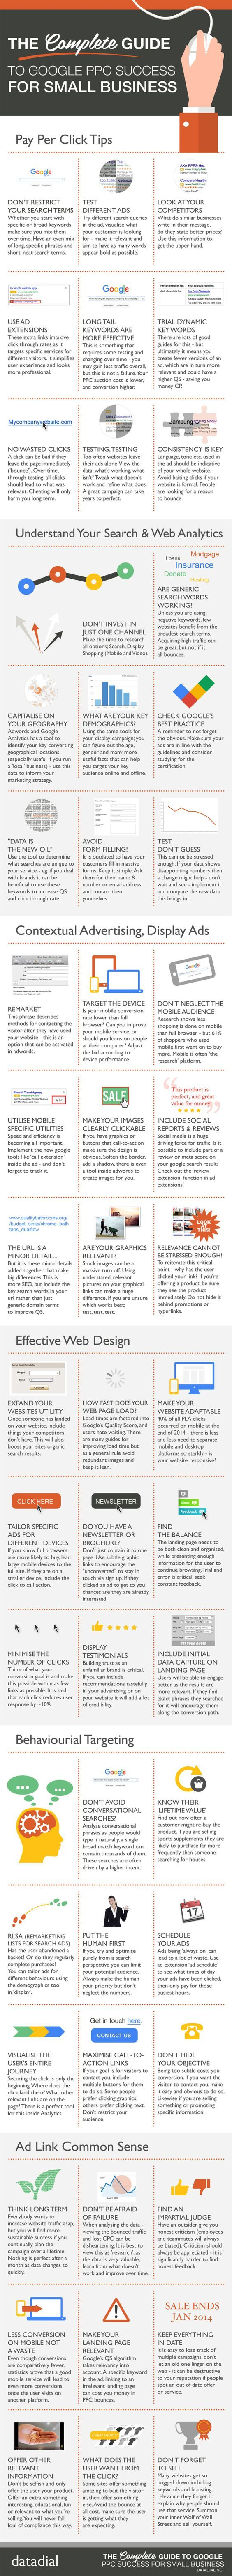 Httpsocial media strategy templatespot 53 steps to 53 steps to ultimate ppc success for small business cheaphphosting Gallery